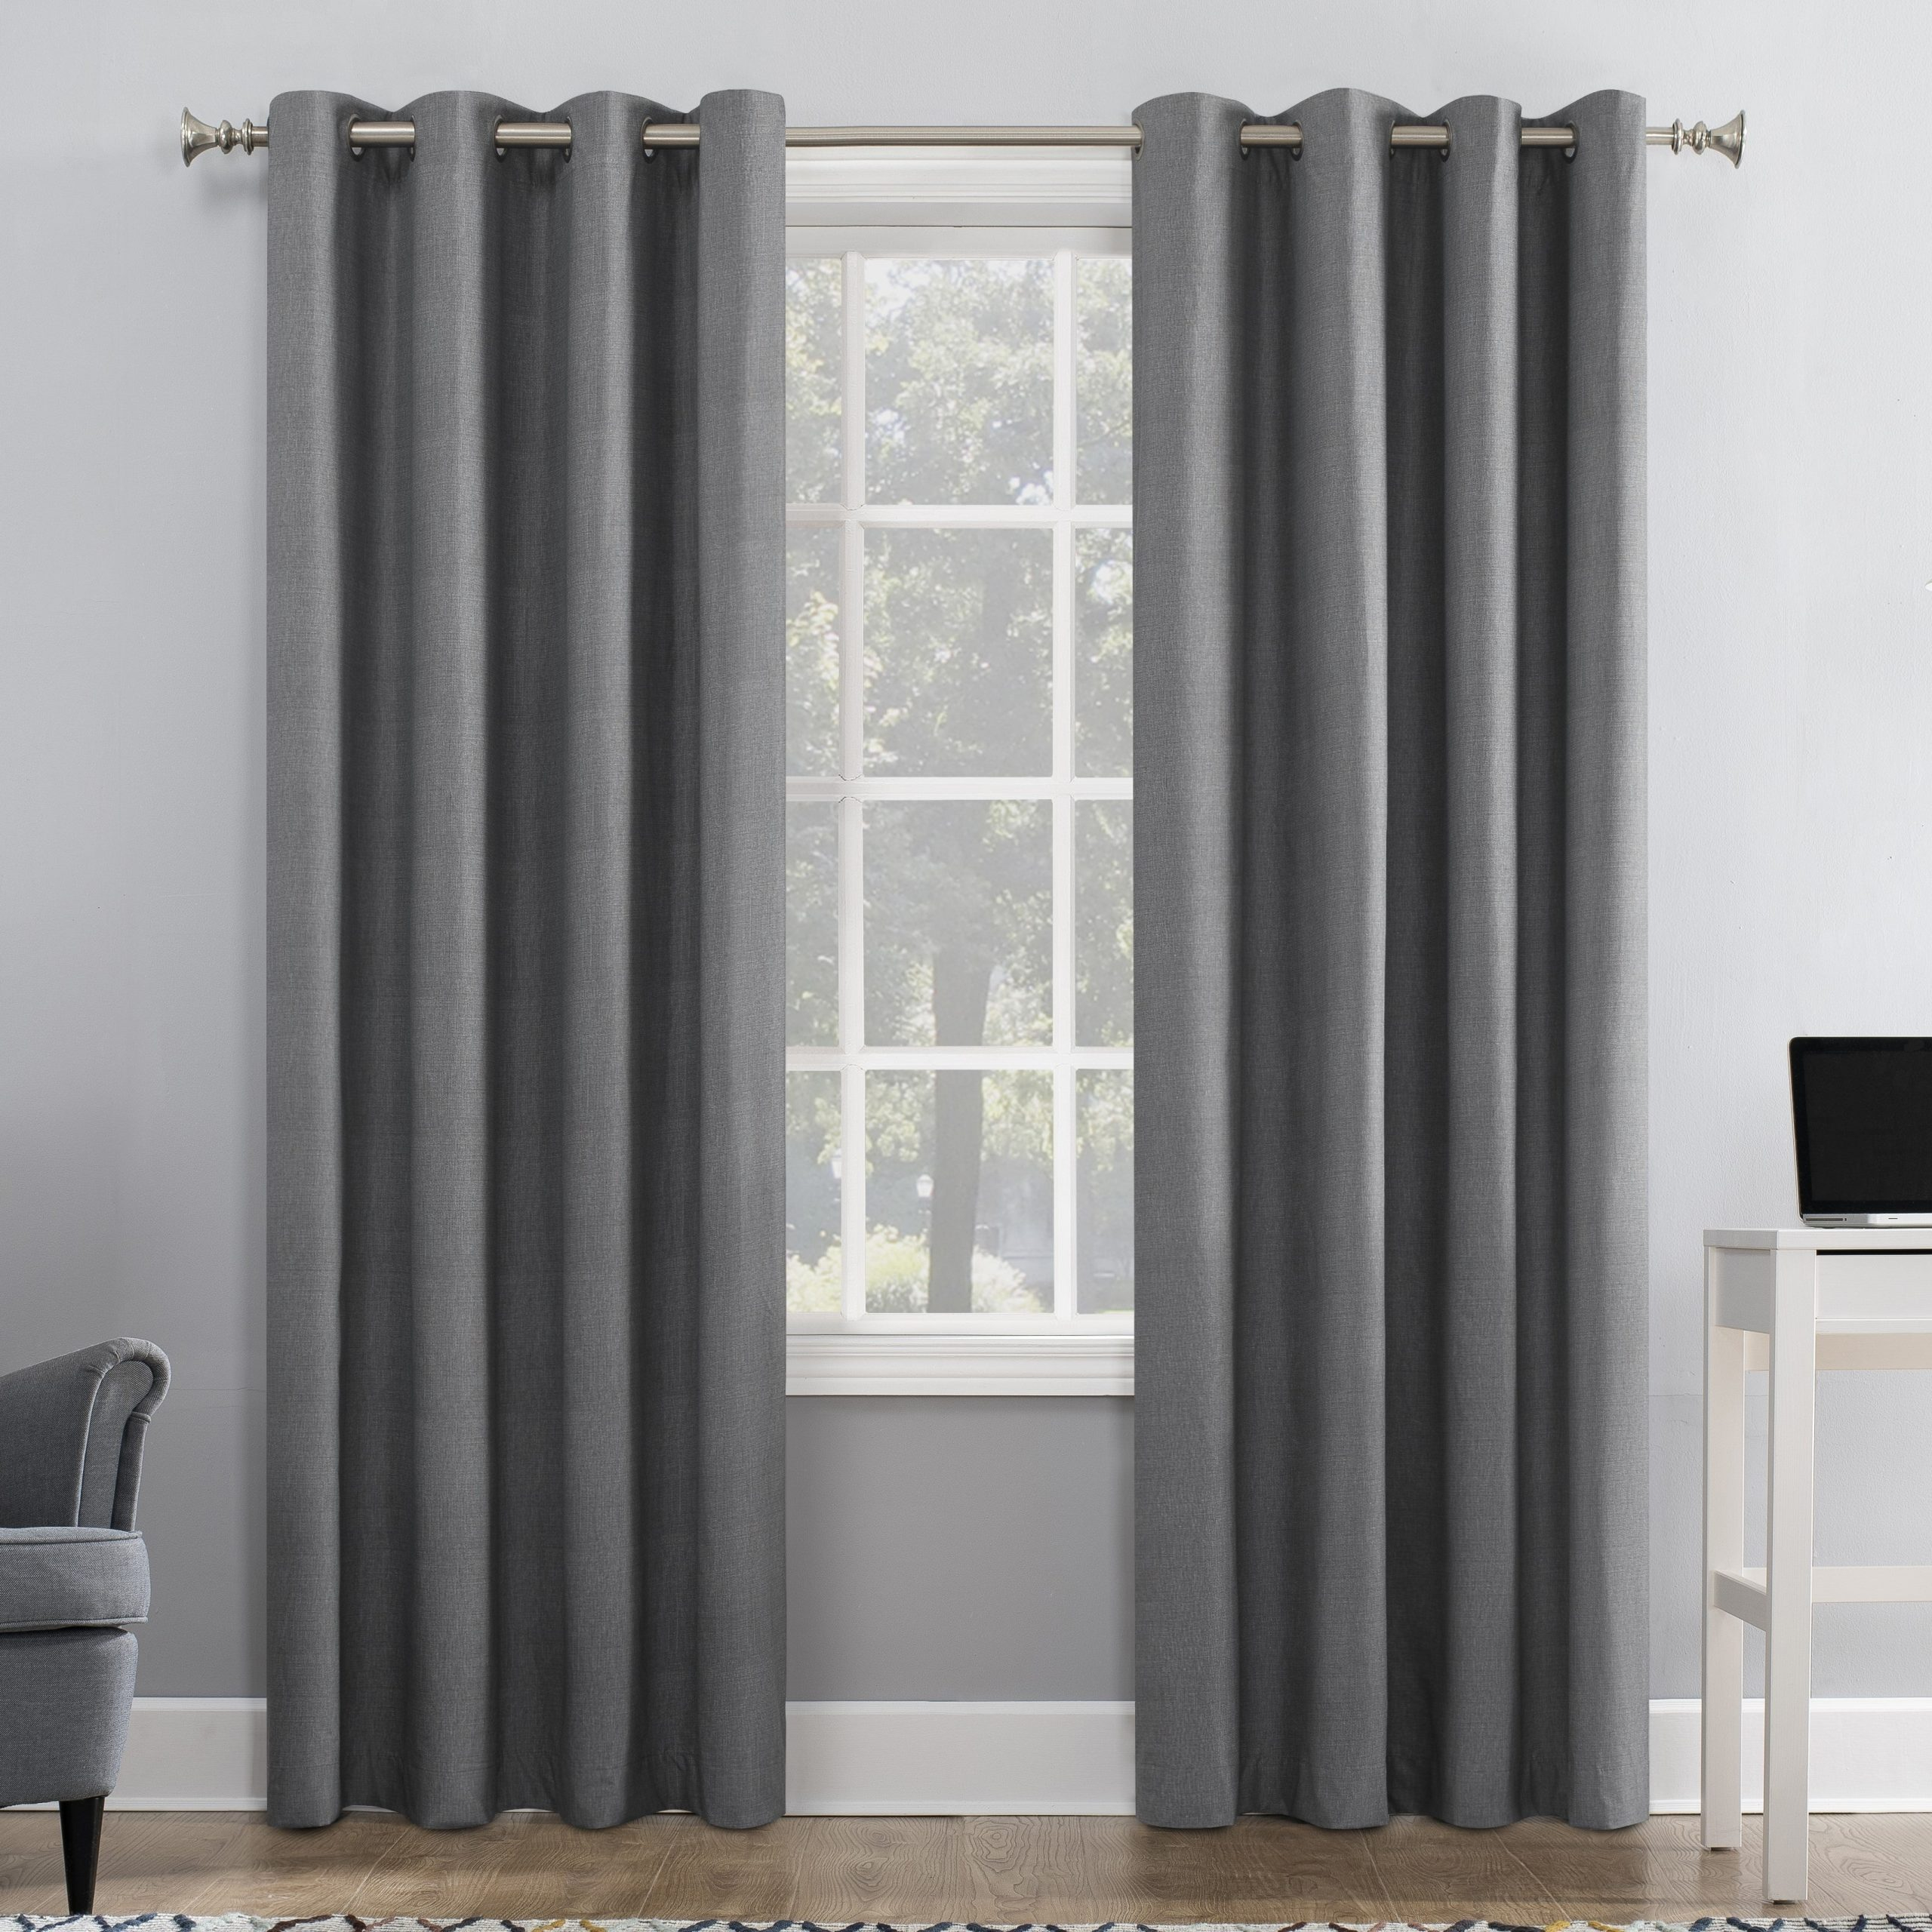 [%sun Zero Duran Thermal Insulated 100% Blackout Grommet Curtain Panel With Regard To Current Cyrus Thermal Blackout Back Tab Curtain Panels|cyrus Thermal Blackout Back Tab Curtain Panels Within Current Sun Zero Duran Thermal Insulated 100% Blackout Grommet Curtain Panel|current Cyrus Thermal Blackout Back Tab Curtain Panels In Sun Zero Duran Thermal Insulated 100% Blackout Grommet Curtain Panel|preferred Sun Zero Duran Thermal Insulated 100% Blackout Grommet Curtain Panel Intended For Cyrus Thermal Blackout Back Tab Curtain Panels%] (View 8 of 20)